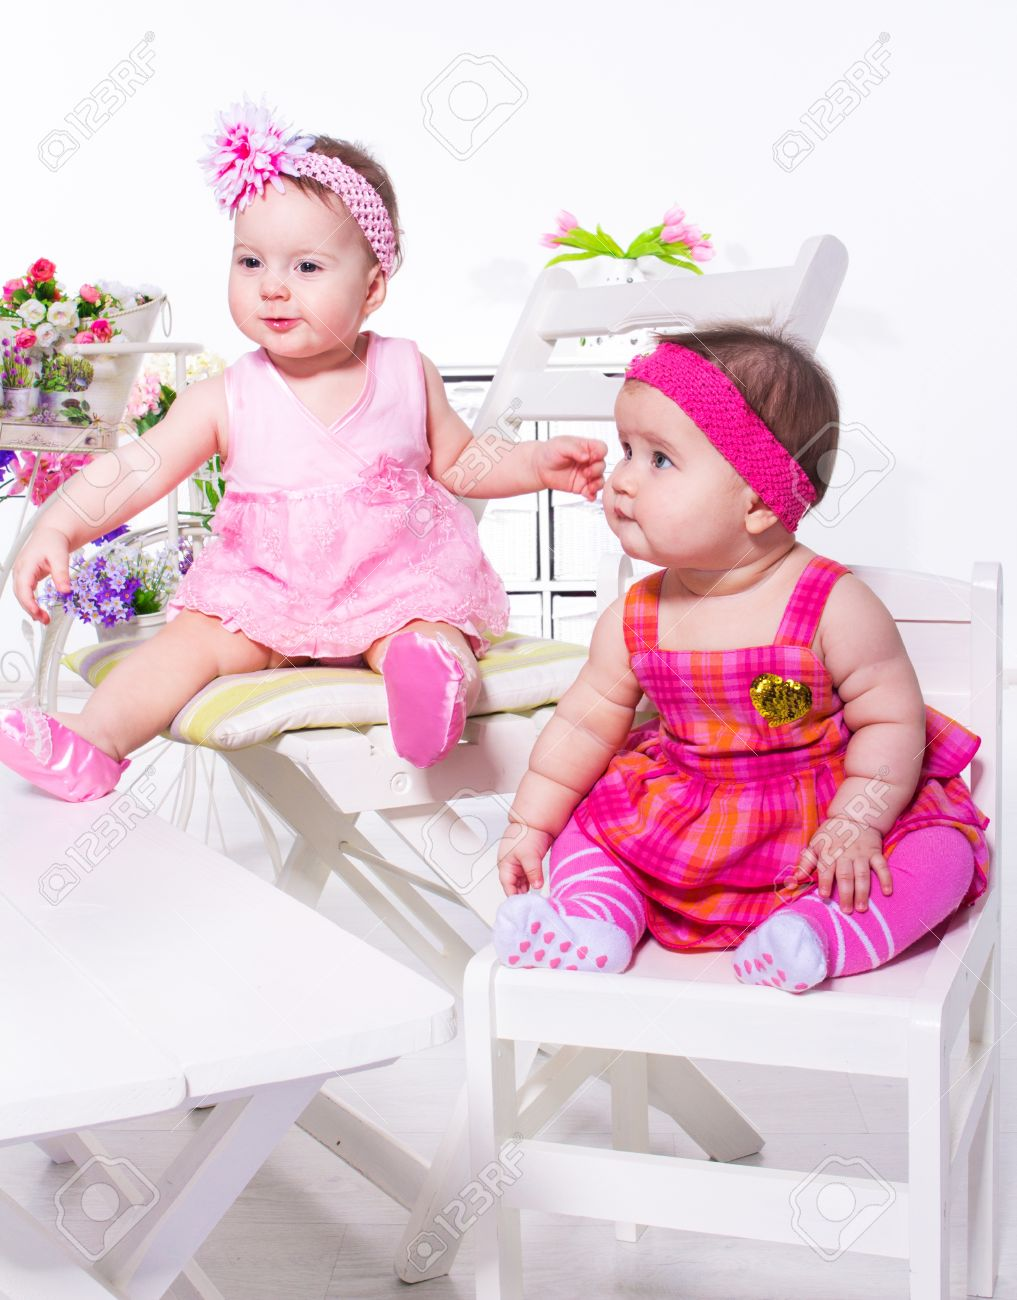 Stock Photo - Two cute baby friends sitting